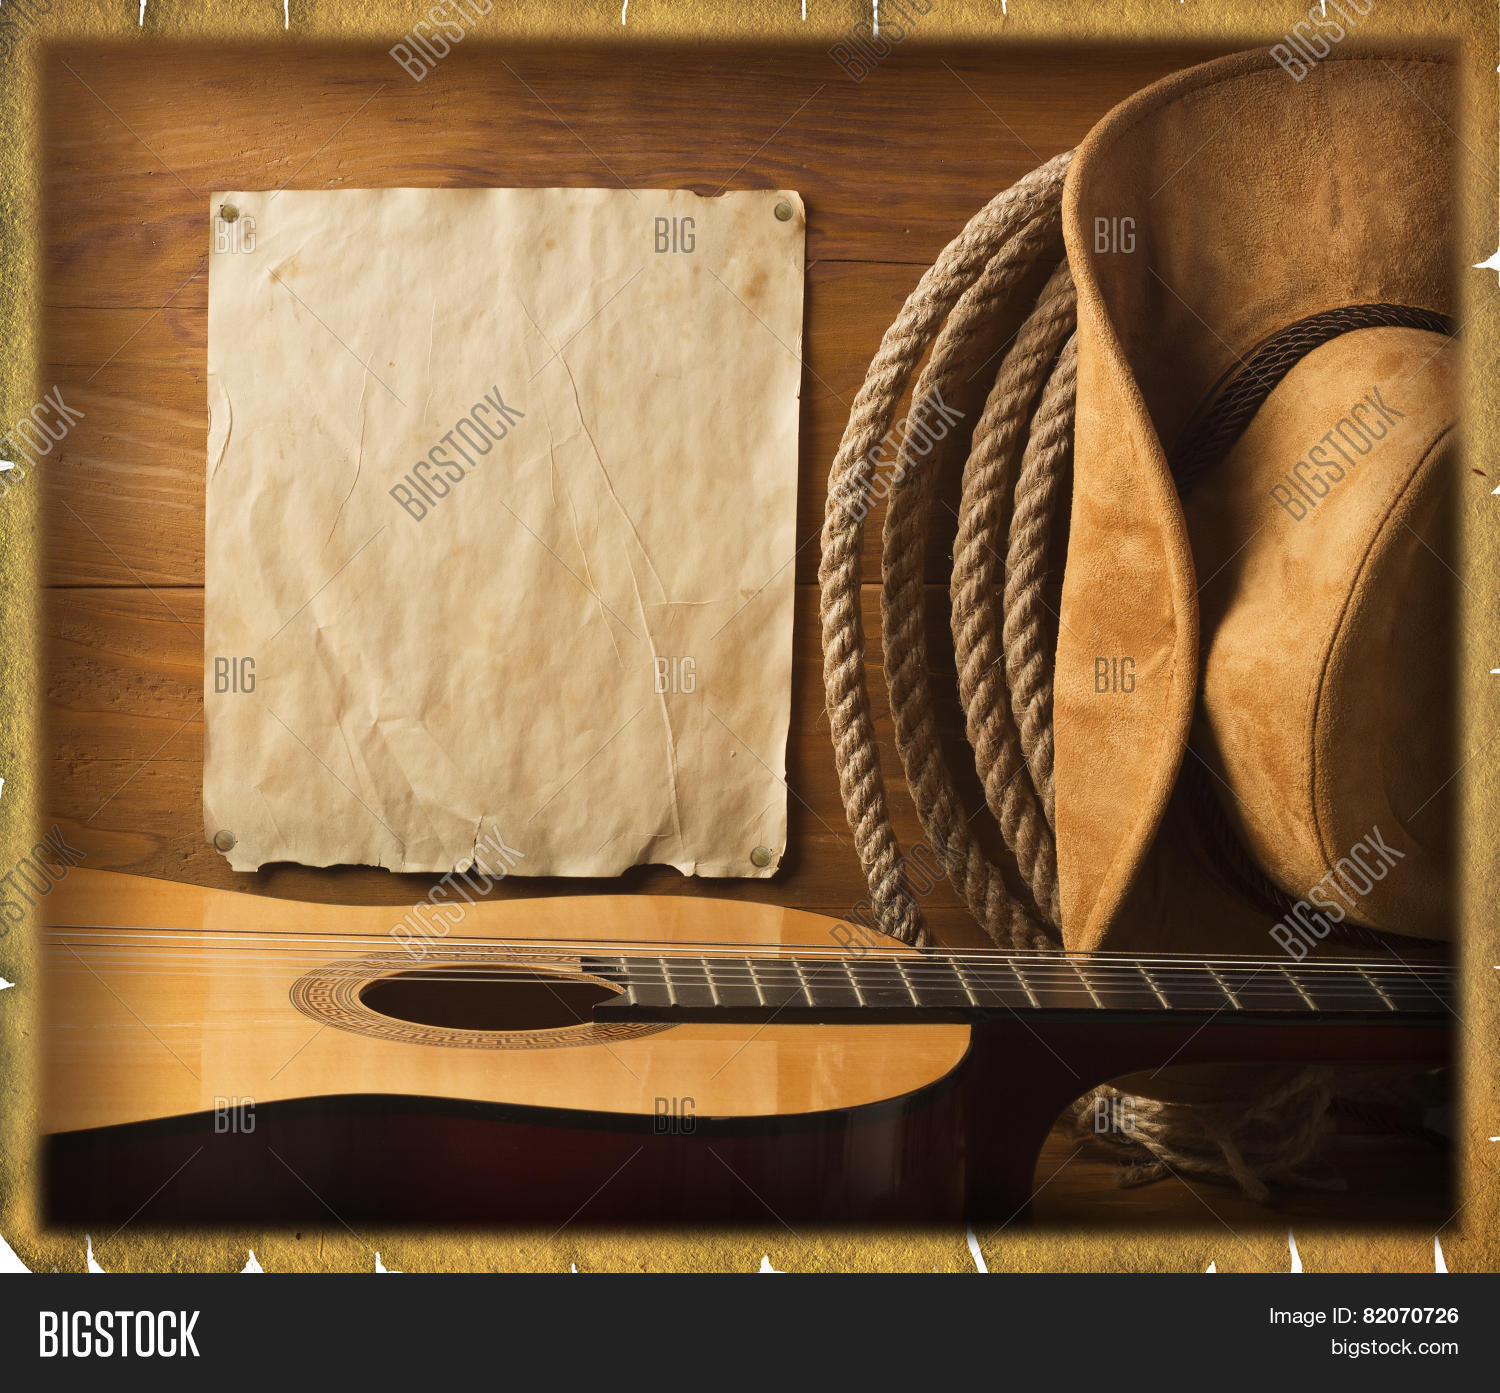 Country Music Wallpaper: American Cowboy Image & Photo (Free Trial)